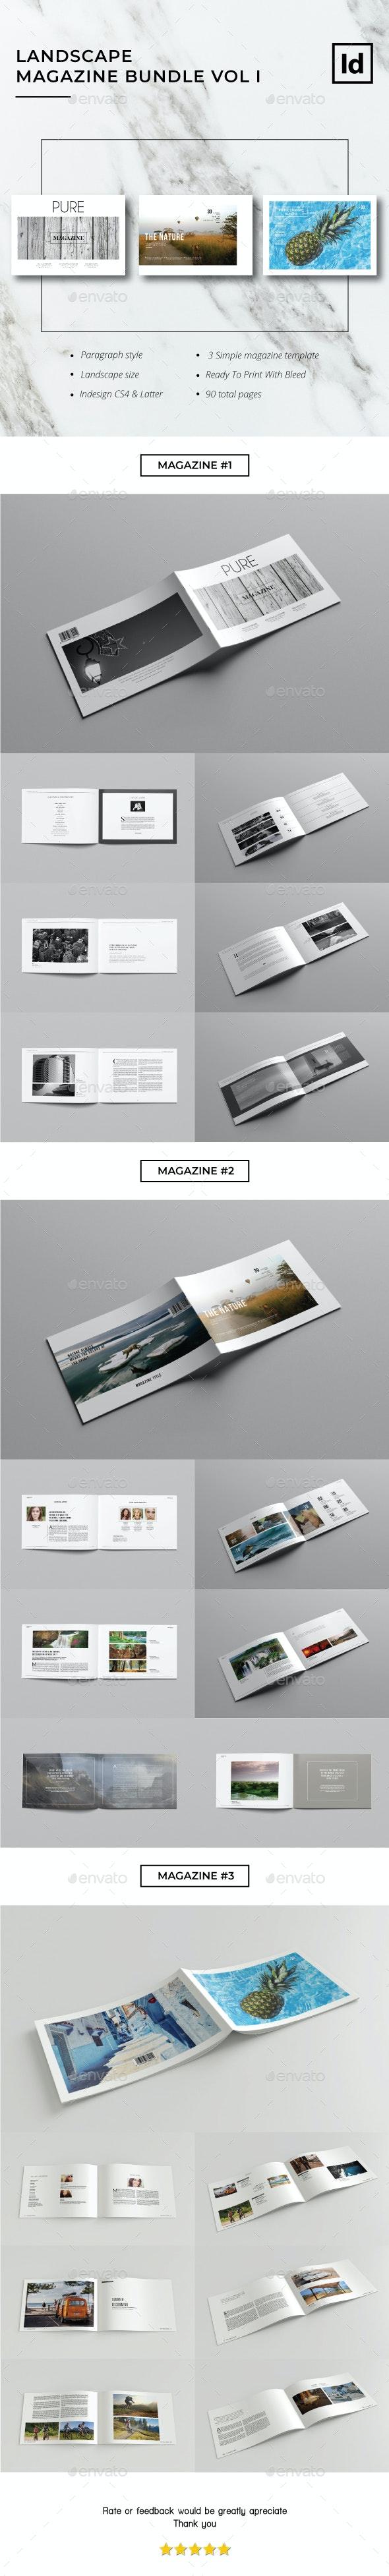 Landscape Magazine Bundle Vol. I - Magazines Print Templates